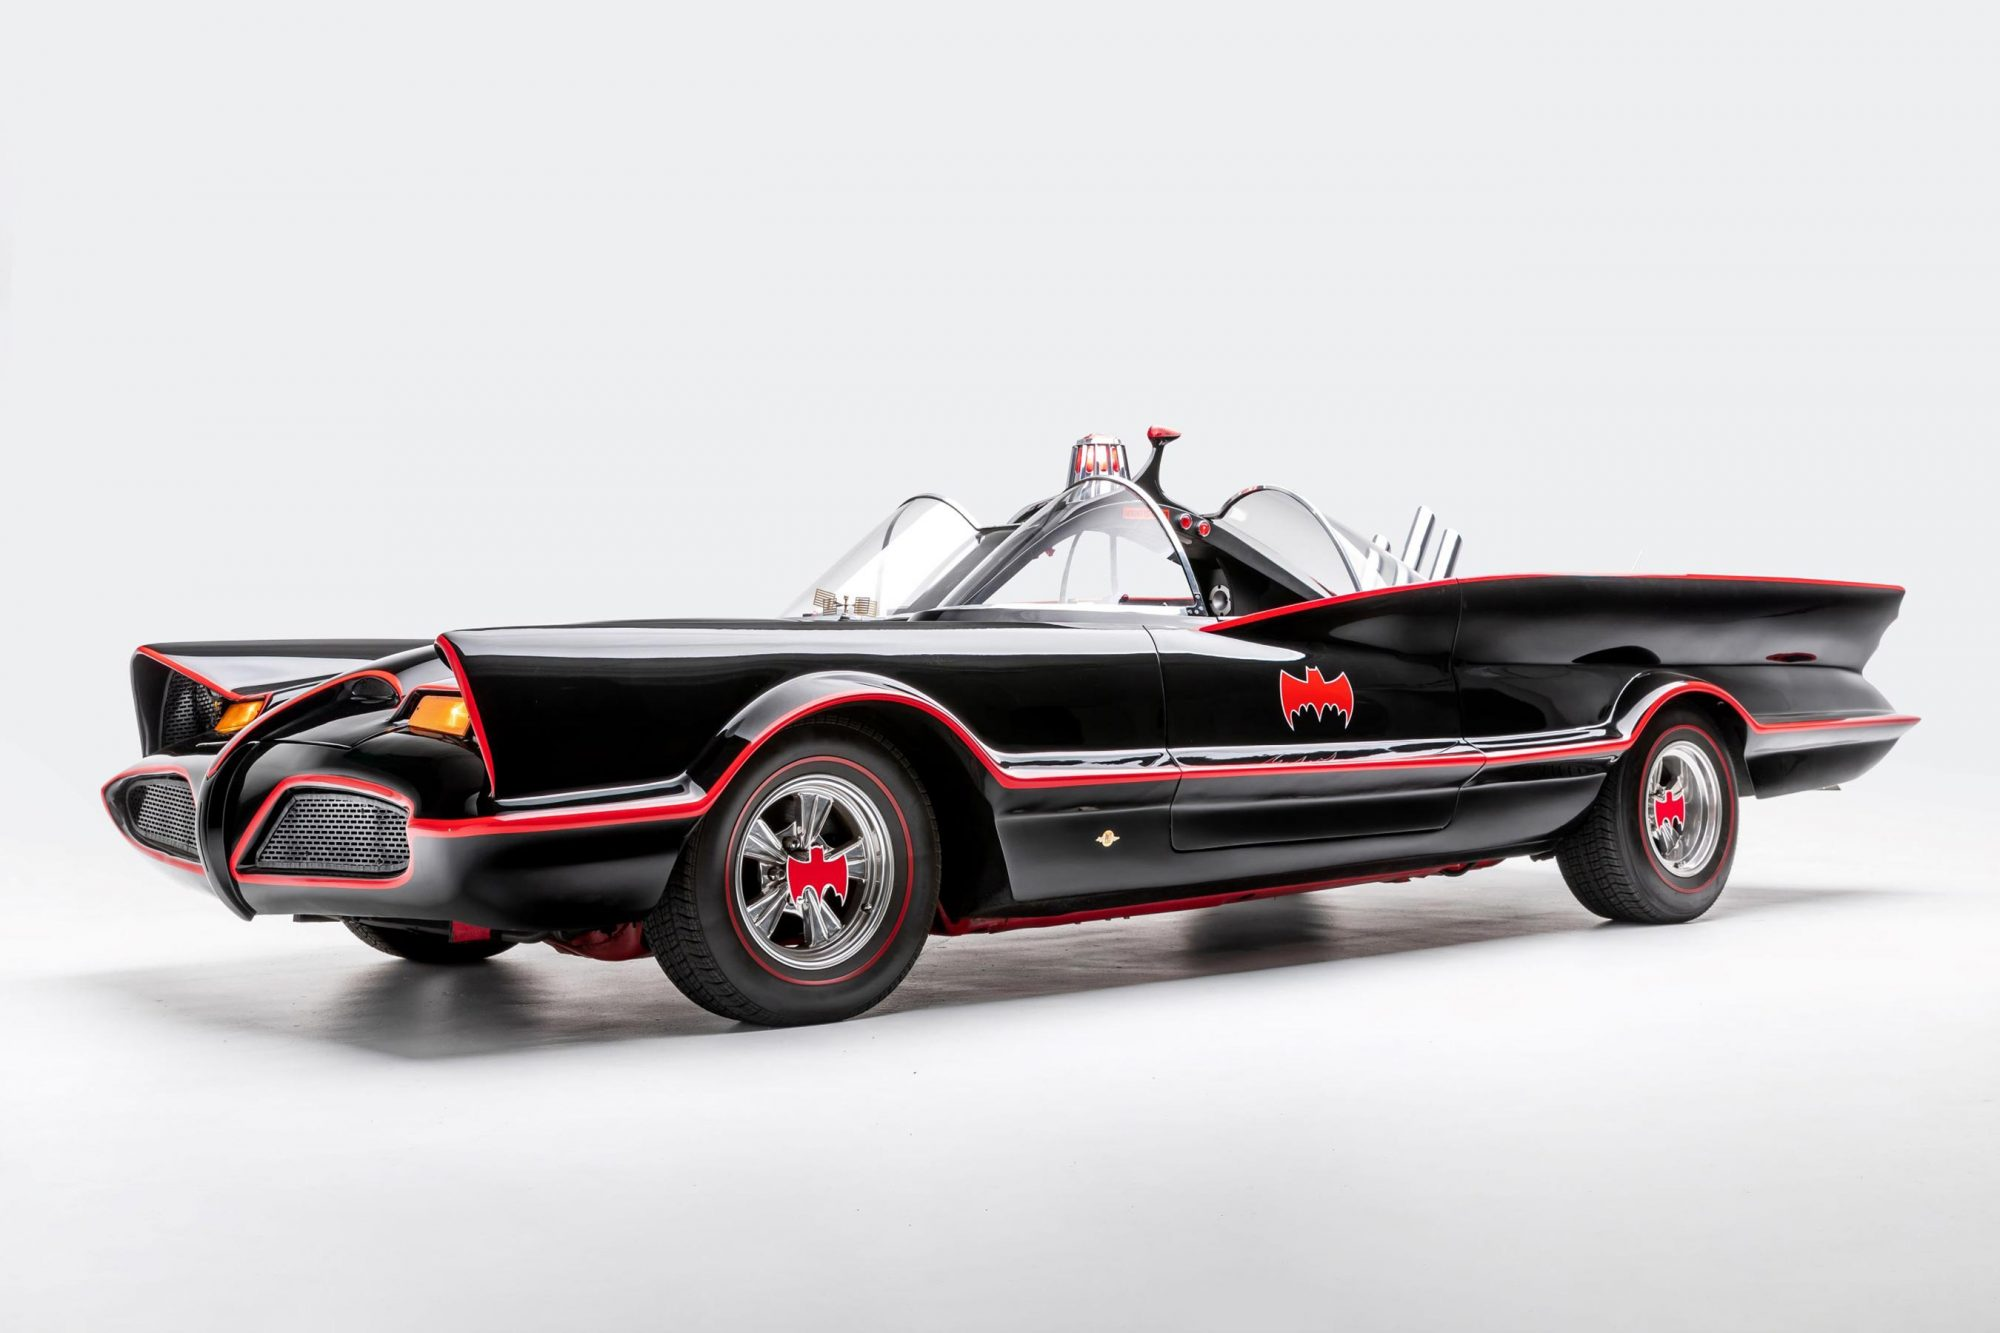 1966 Batmobile (replica) — Batman TV series (1966-1968) and Batman: The Movie (1966)